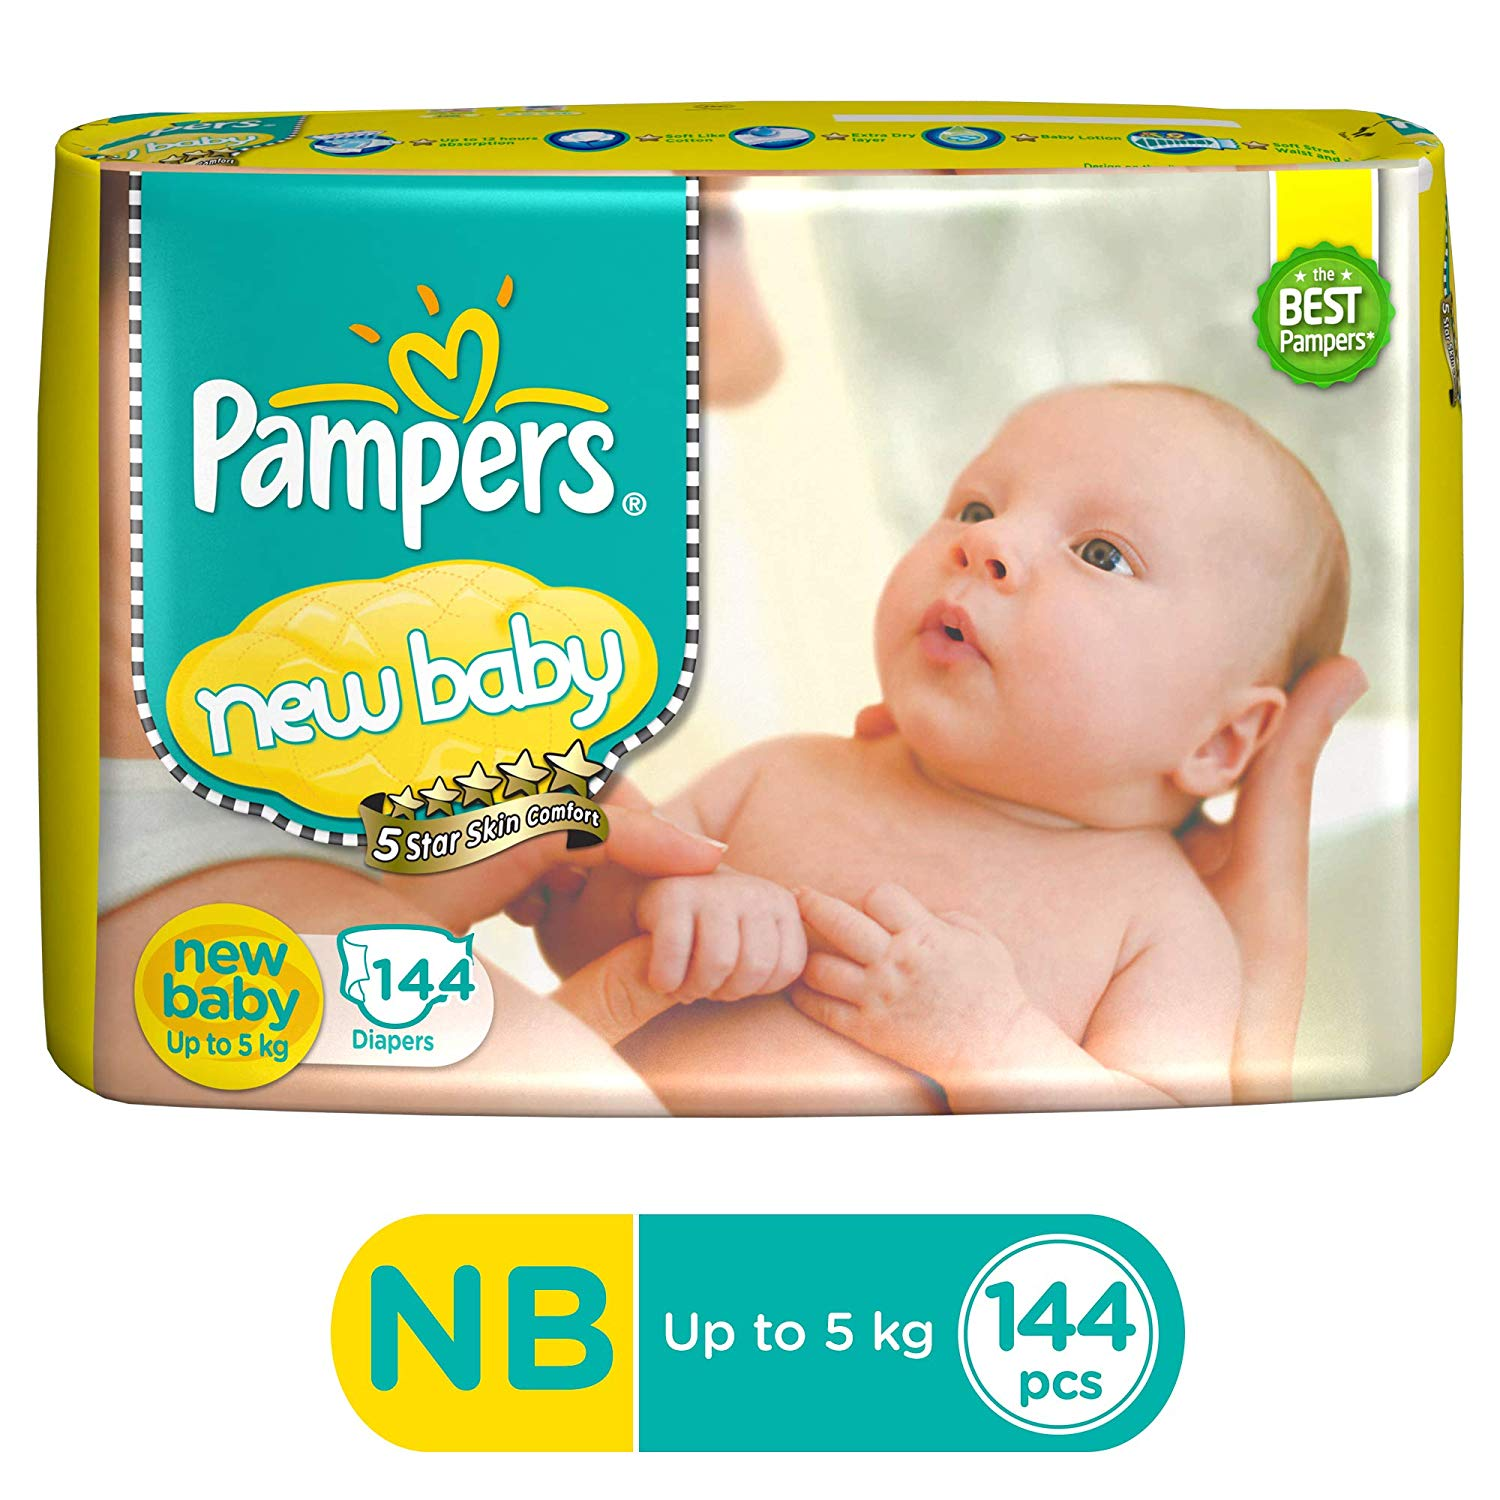 Active Baby Taped Diapers, Newborn (144 Count)